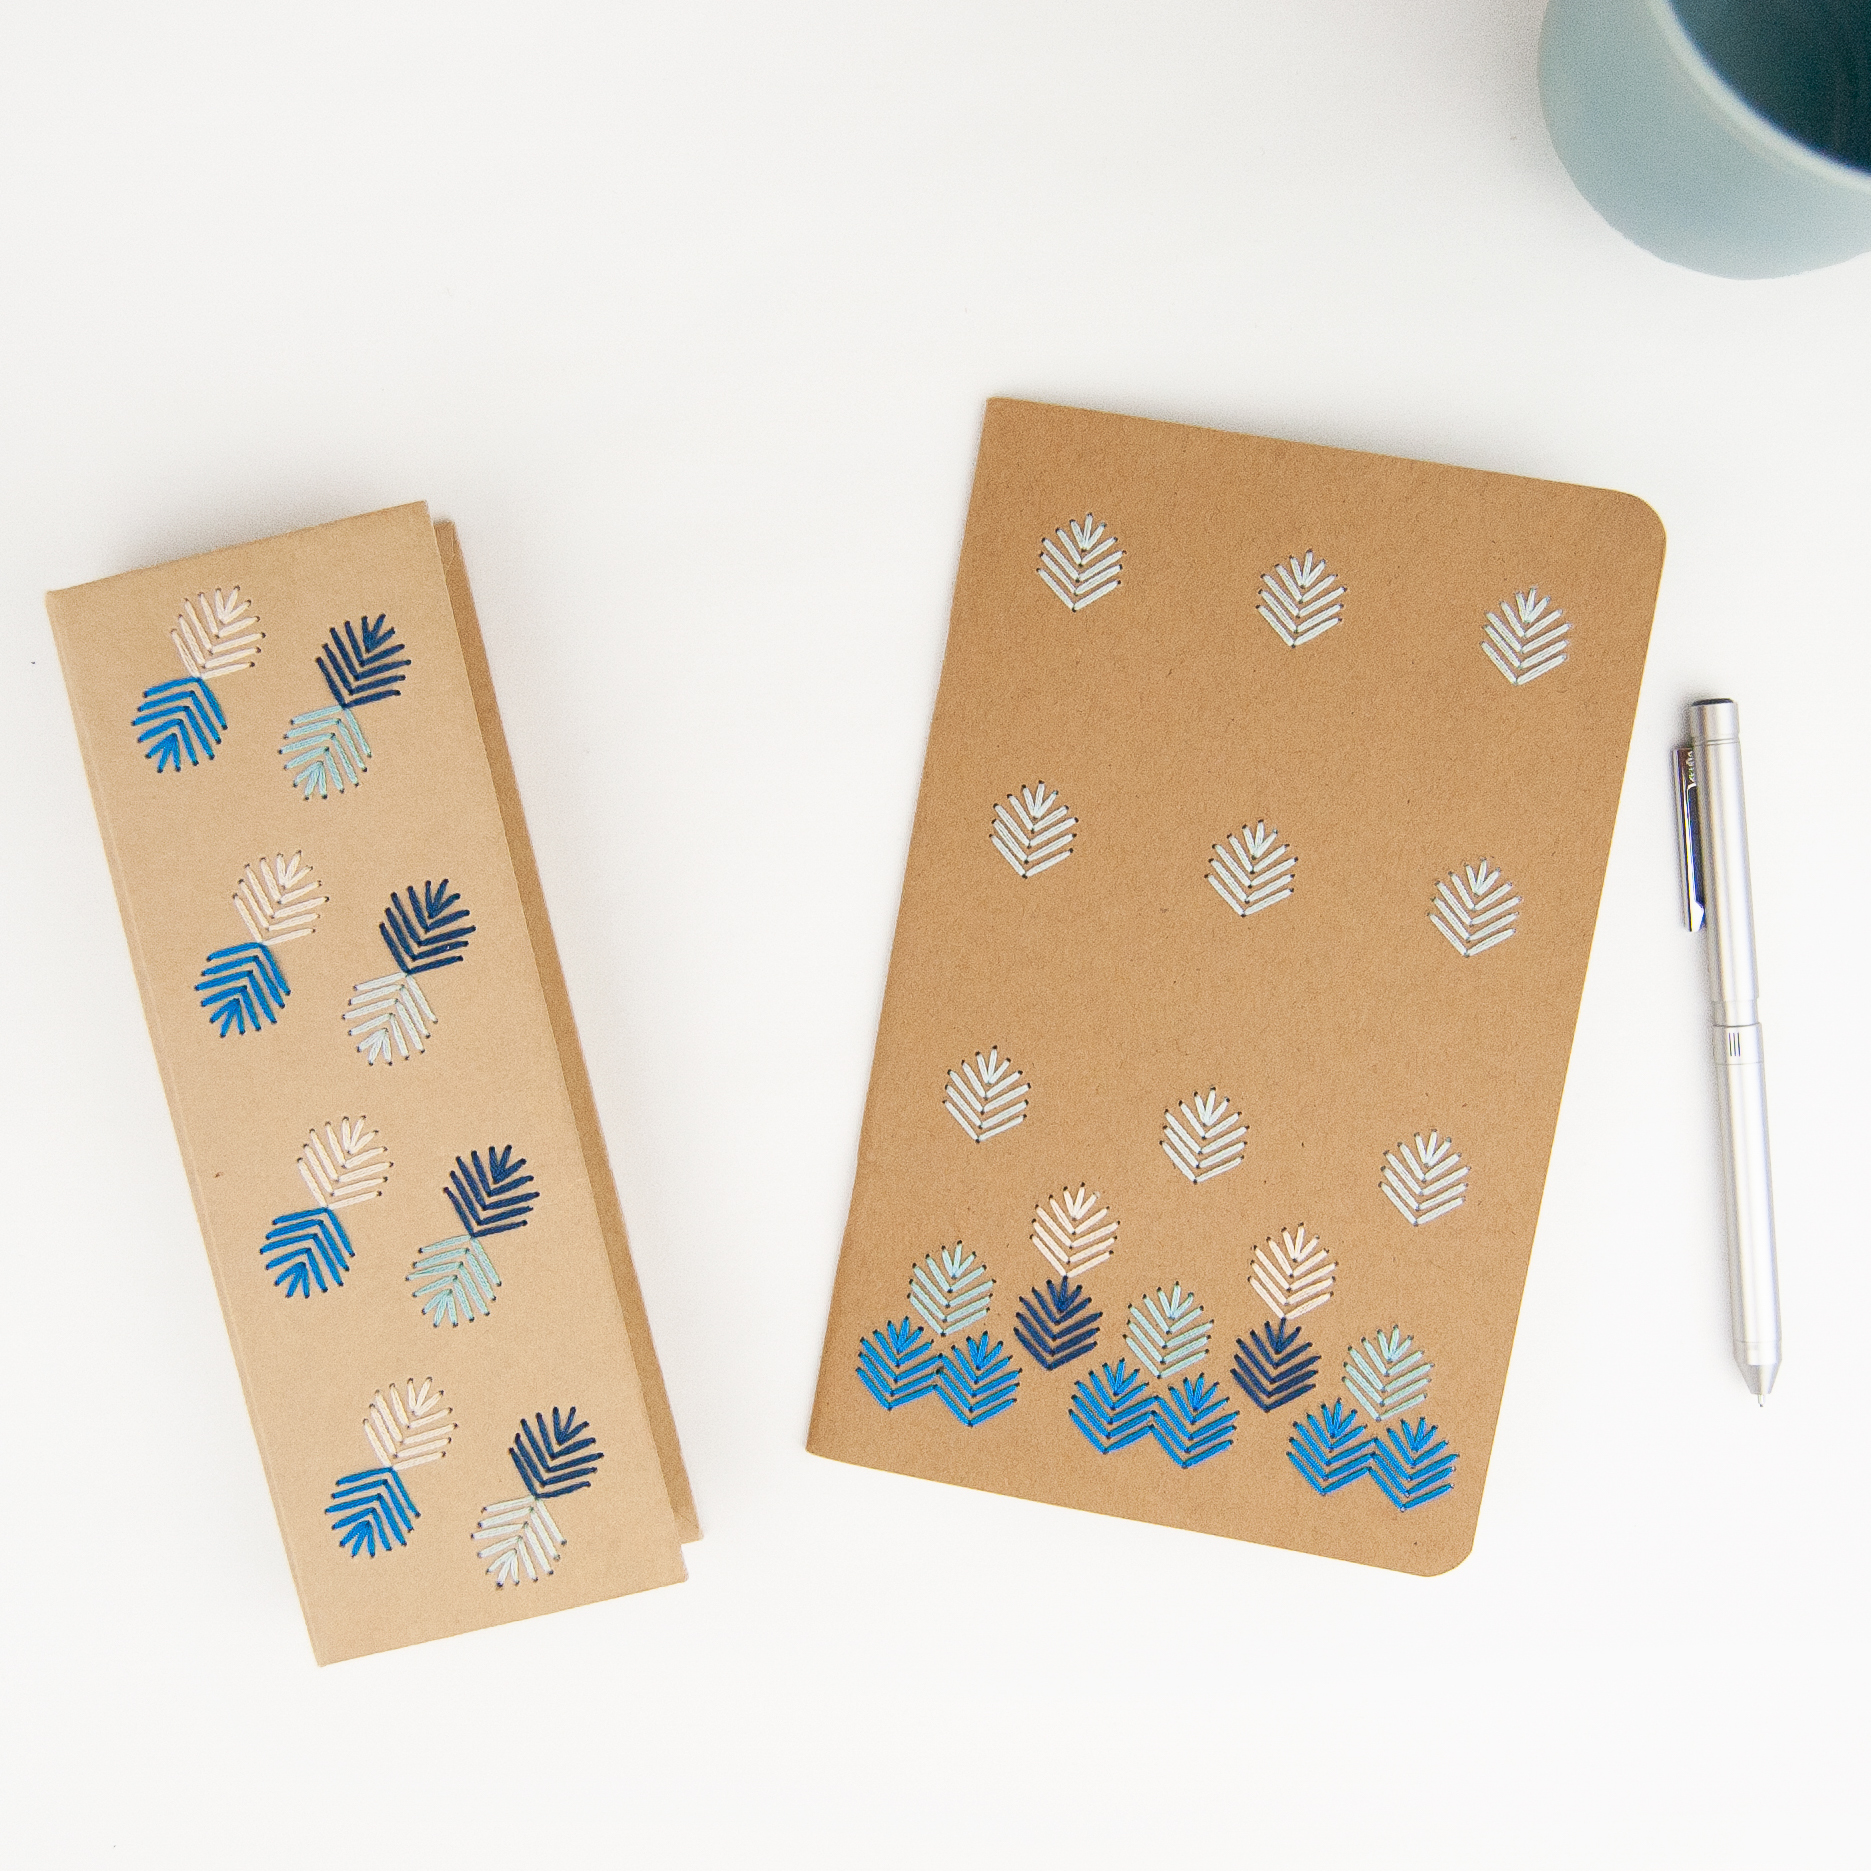 Stationery Embroidery Kit